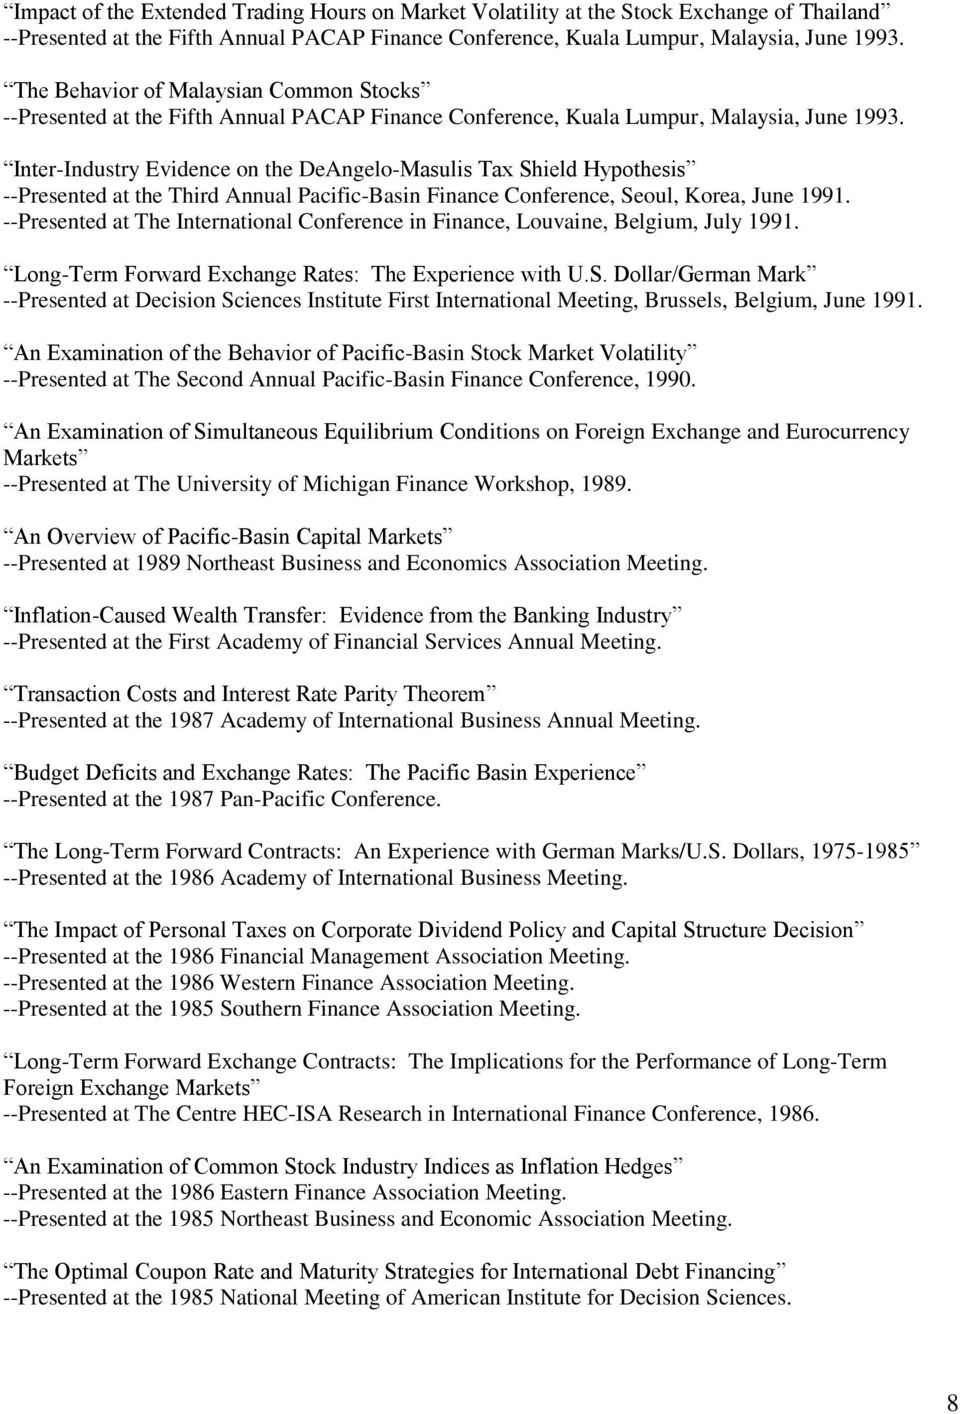 Inter-Industry Evidence on the DeAngelo-Masulis Tax Shield Hypothesis --Presented at the Third Annual Pacific-Basin Finance Conference, Seoul, Korea, June 1991.